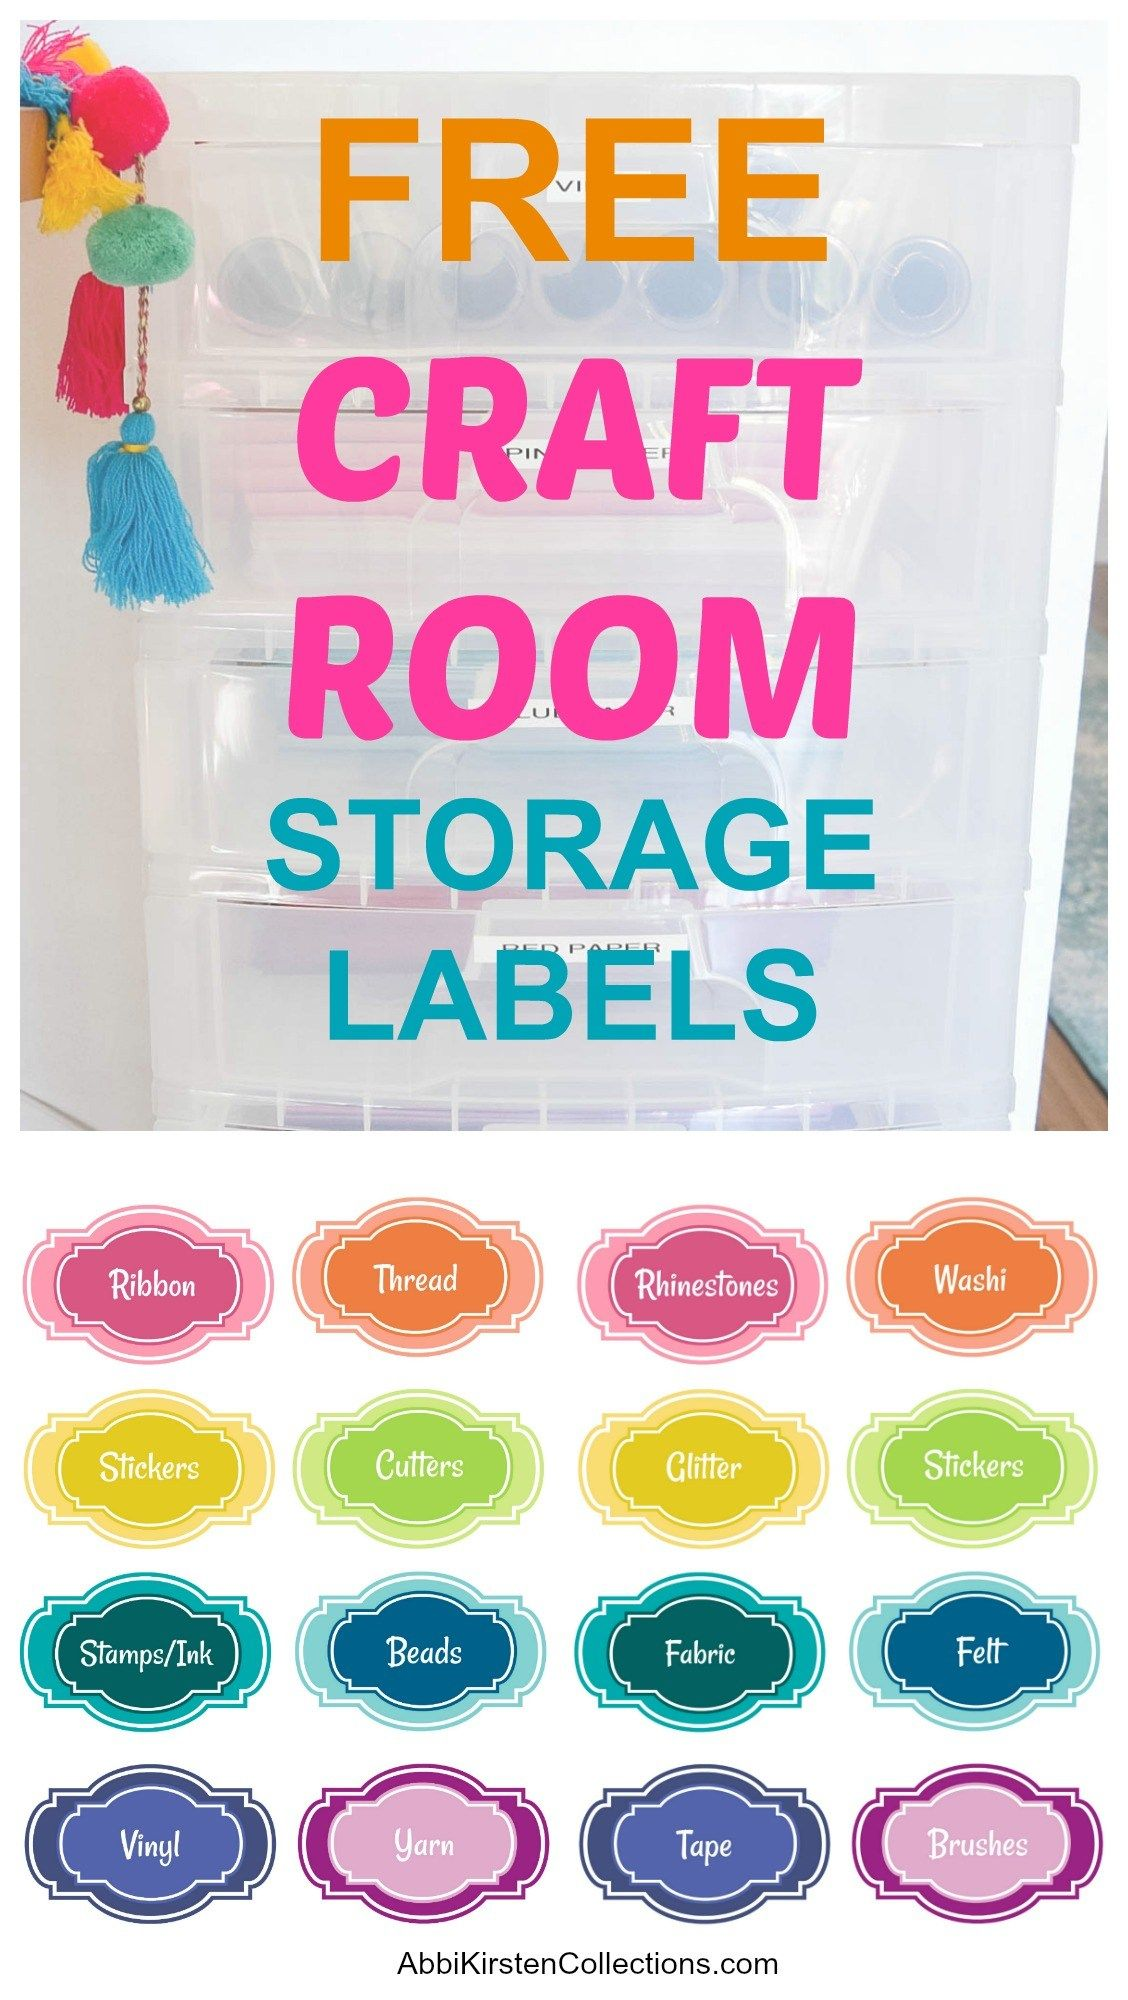 19 Craft Storage Solutions How to Final Organize Your Craft Room! is part of Craft paper storage, Craft storage containers, Craft storage solutions, Craft supply labels, Storage labels, Craft room organization - The best craft storage solutions to finally organize your craft room once and for all  Paper storage, pegboard organization, drawer storage and more!